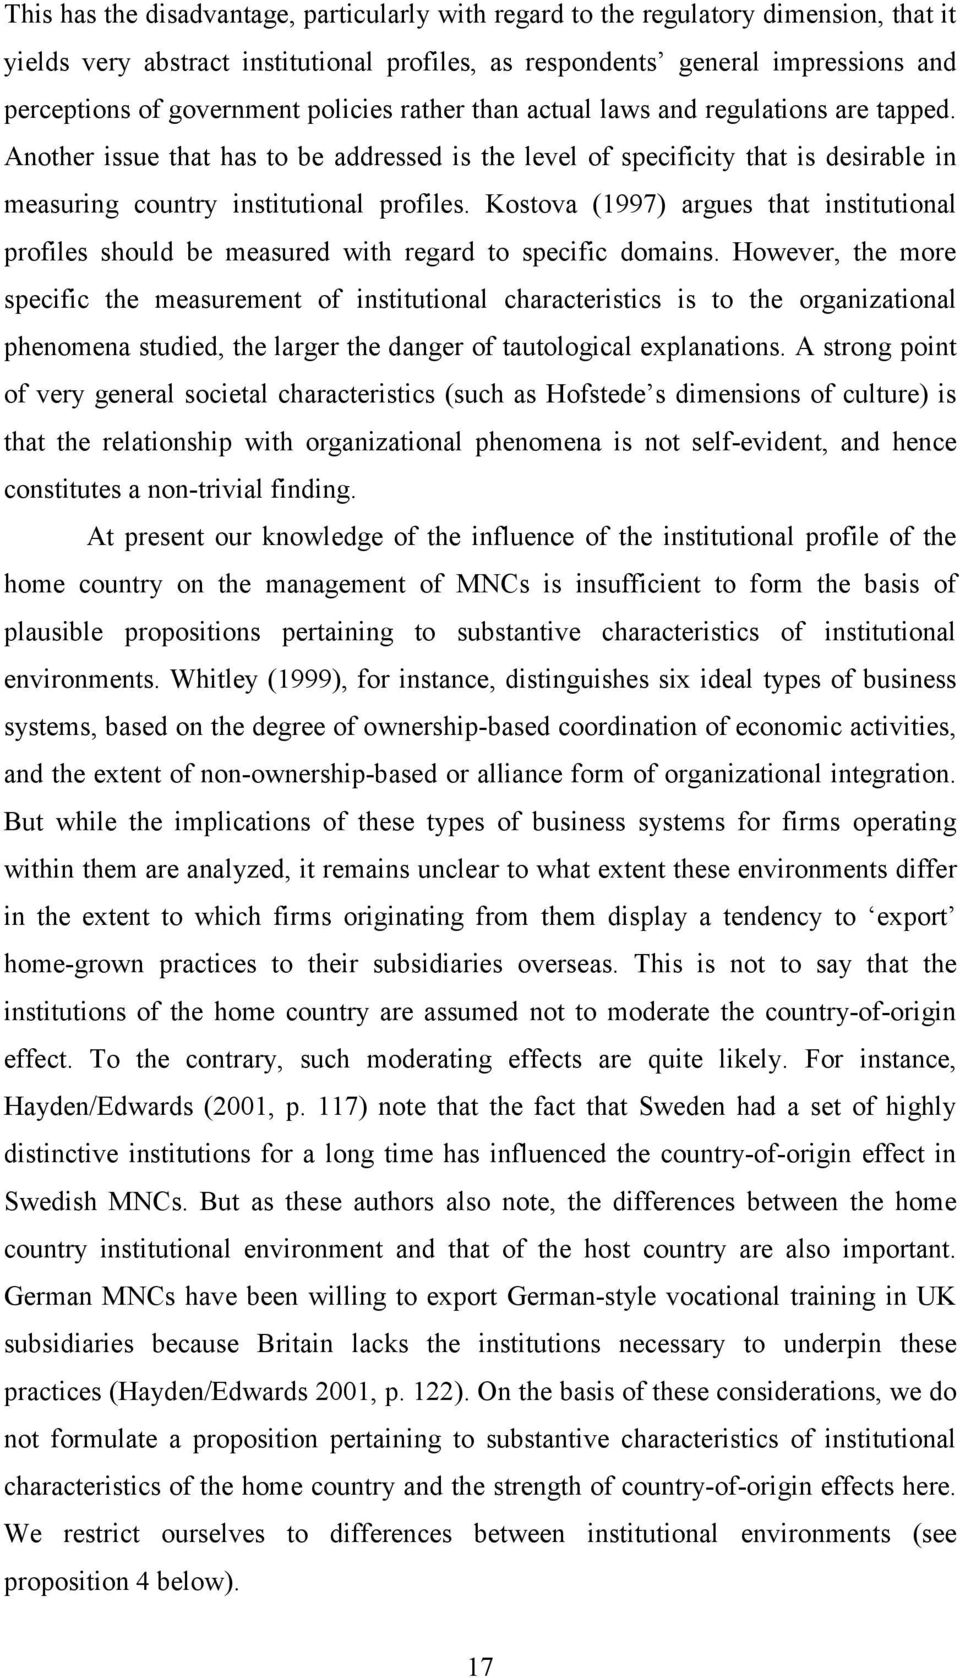 Kostova (1997) argues that institutional profiles should be measured with regard to specific domains.